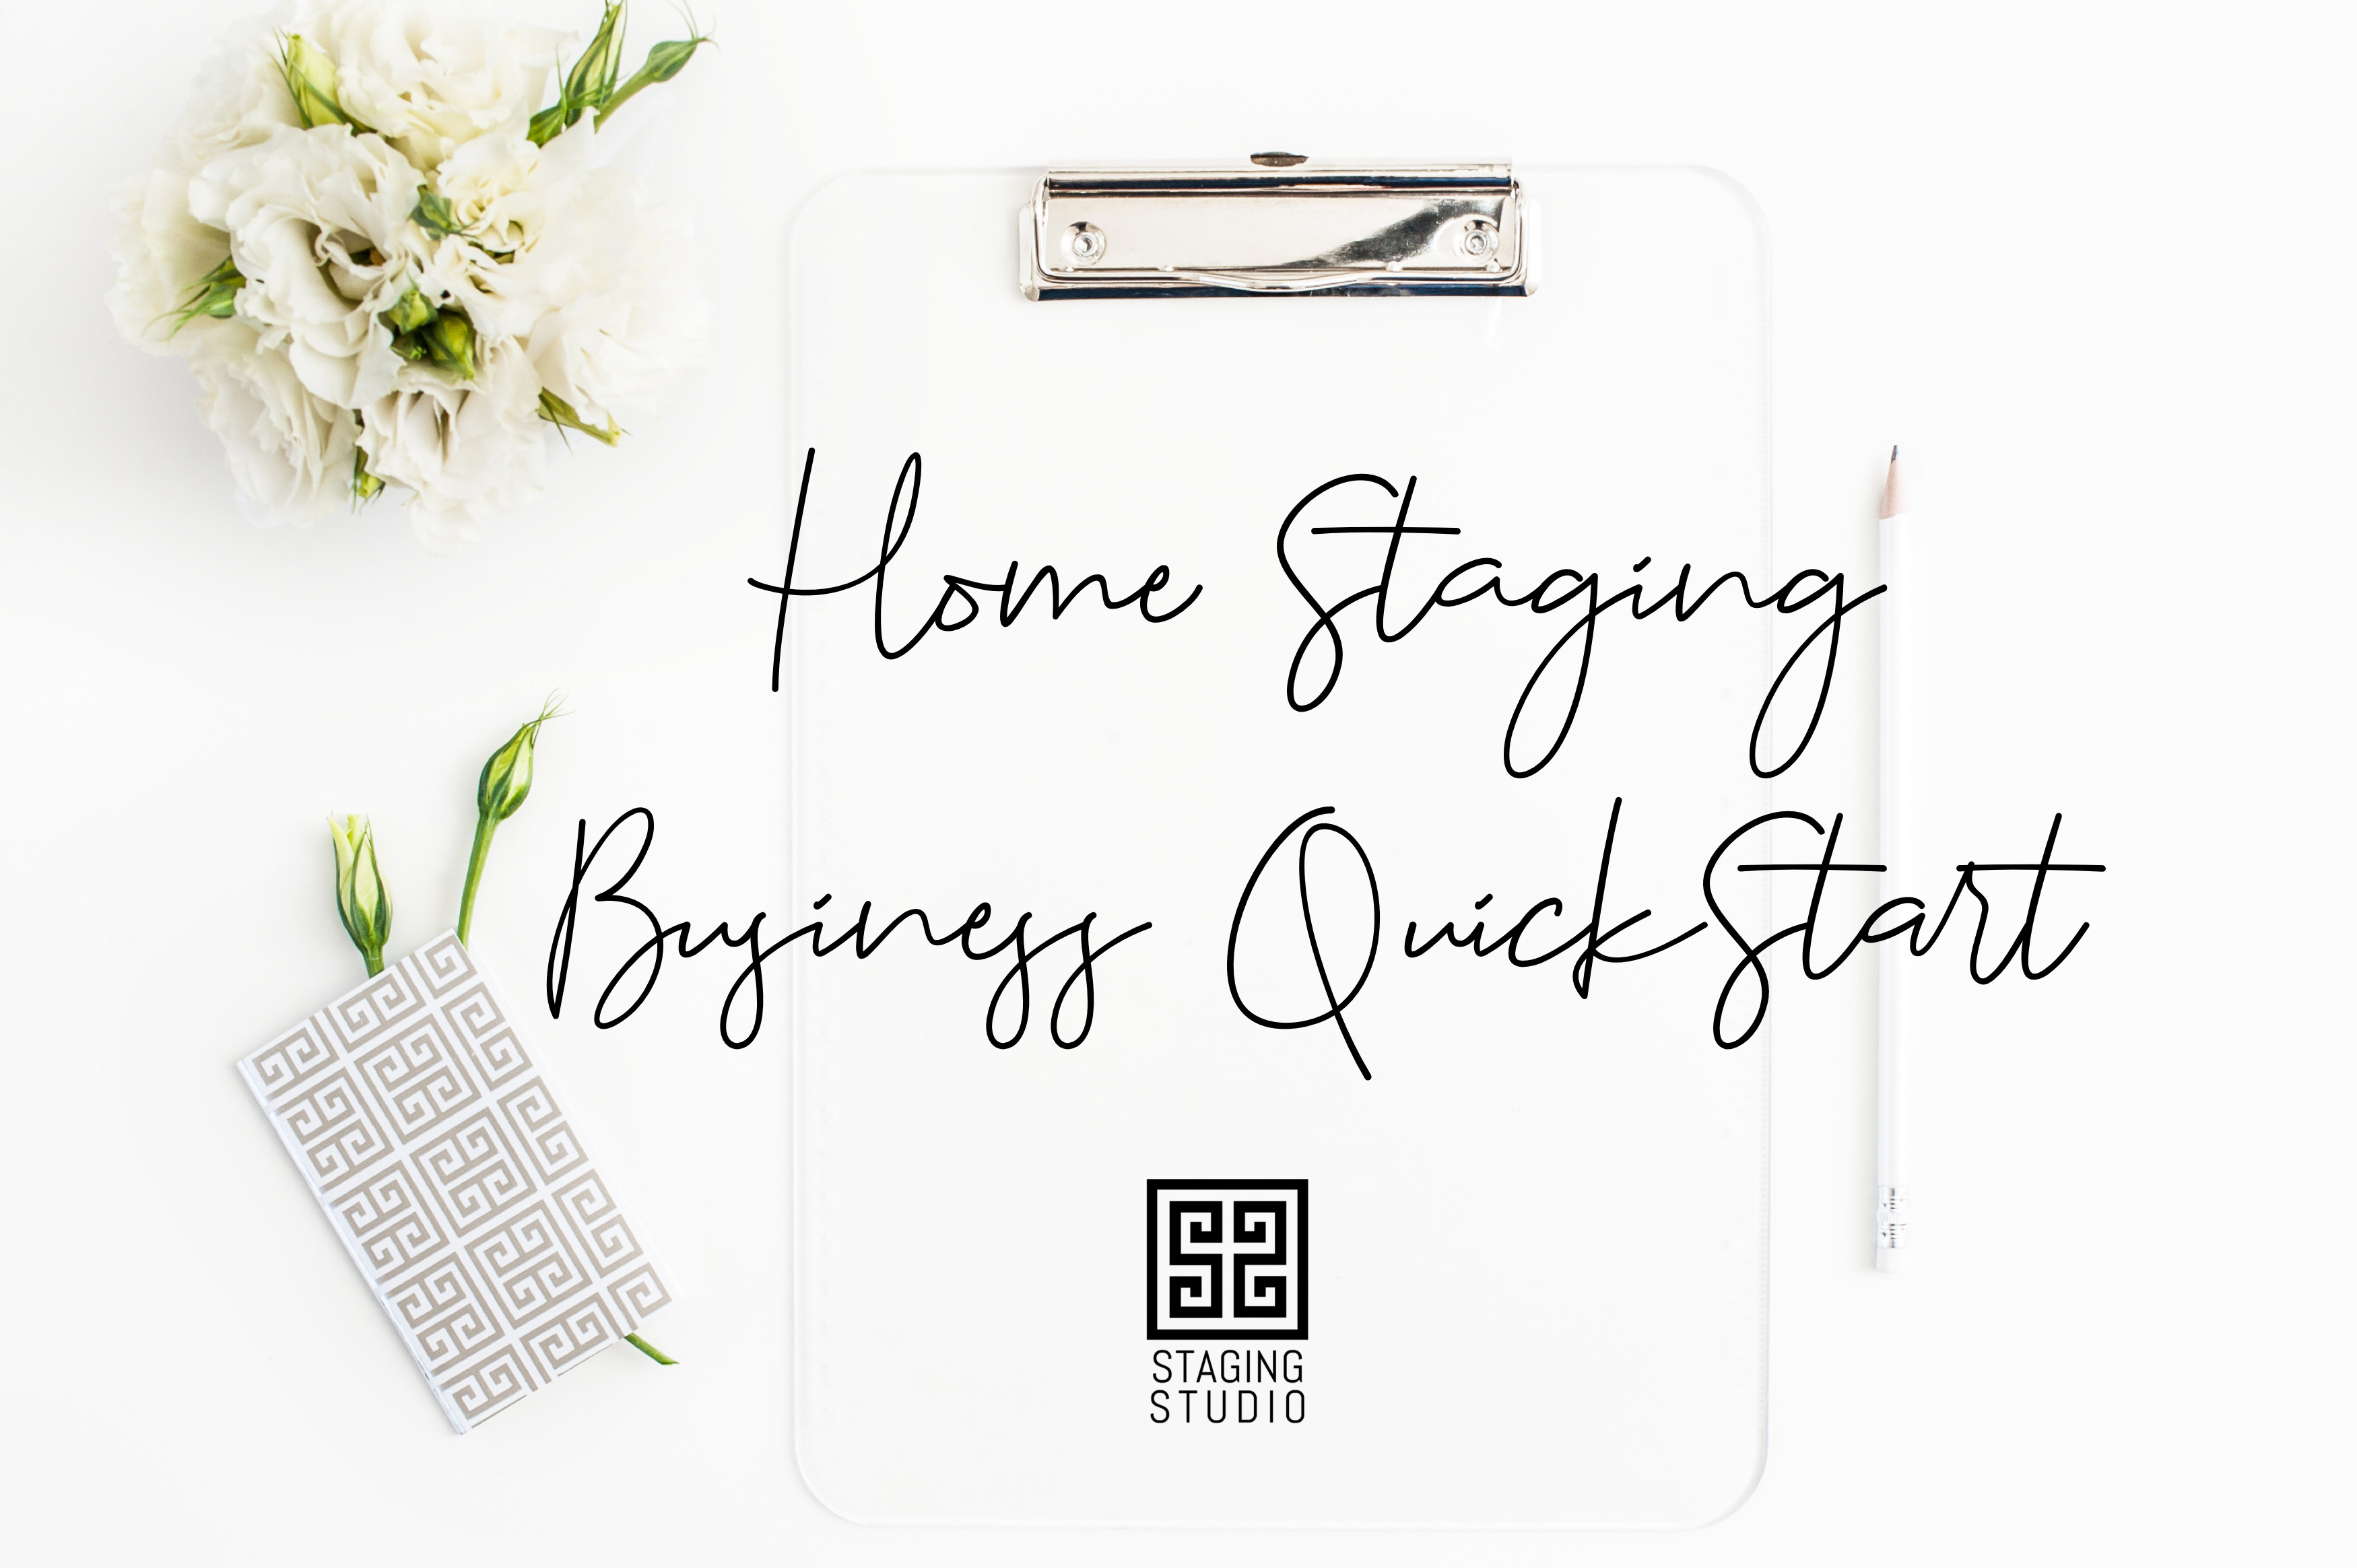 Which Home Staging Certification Is The Best